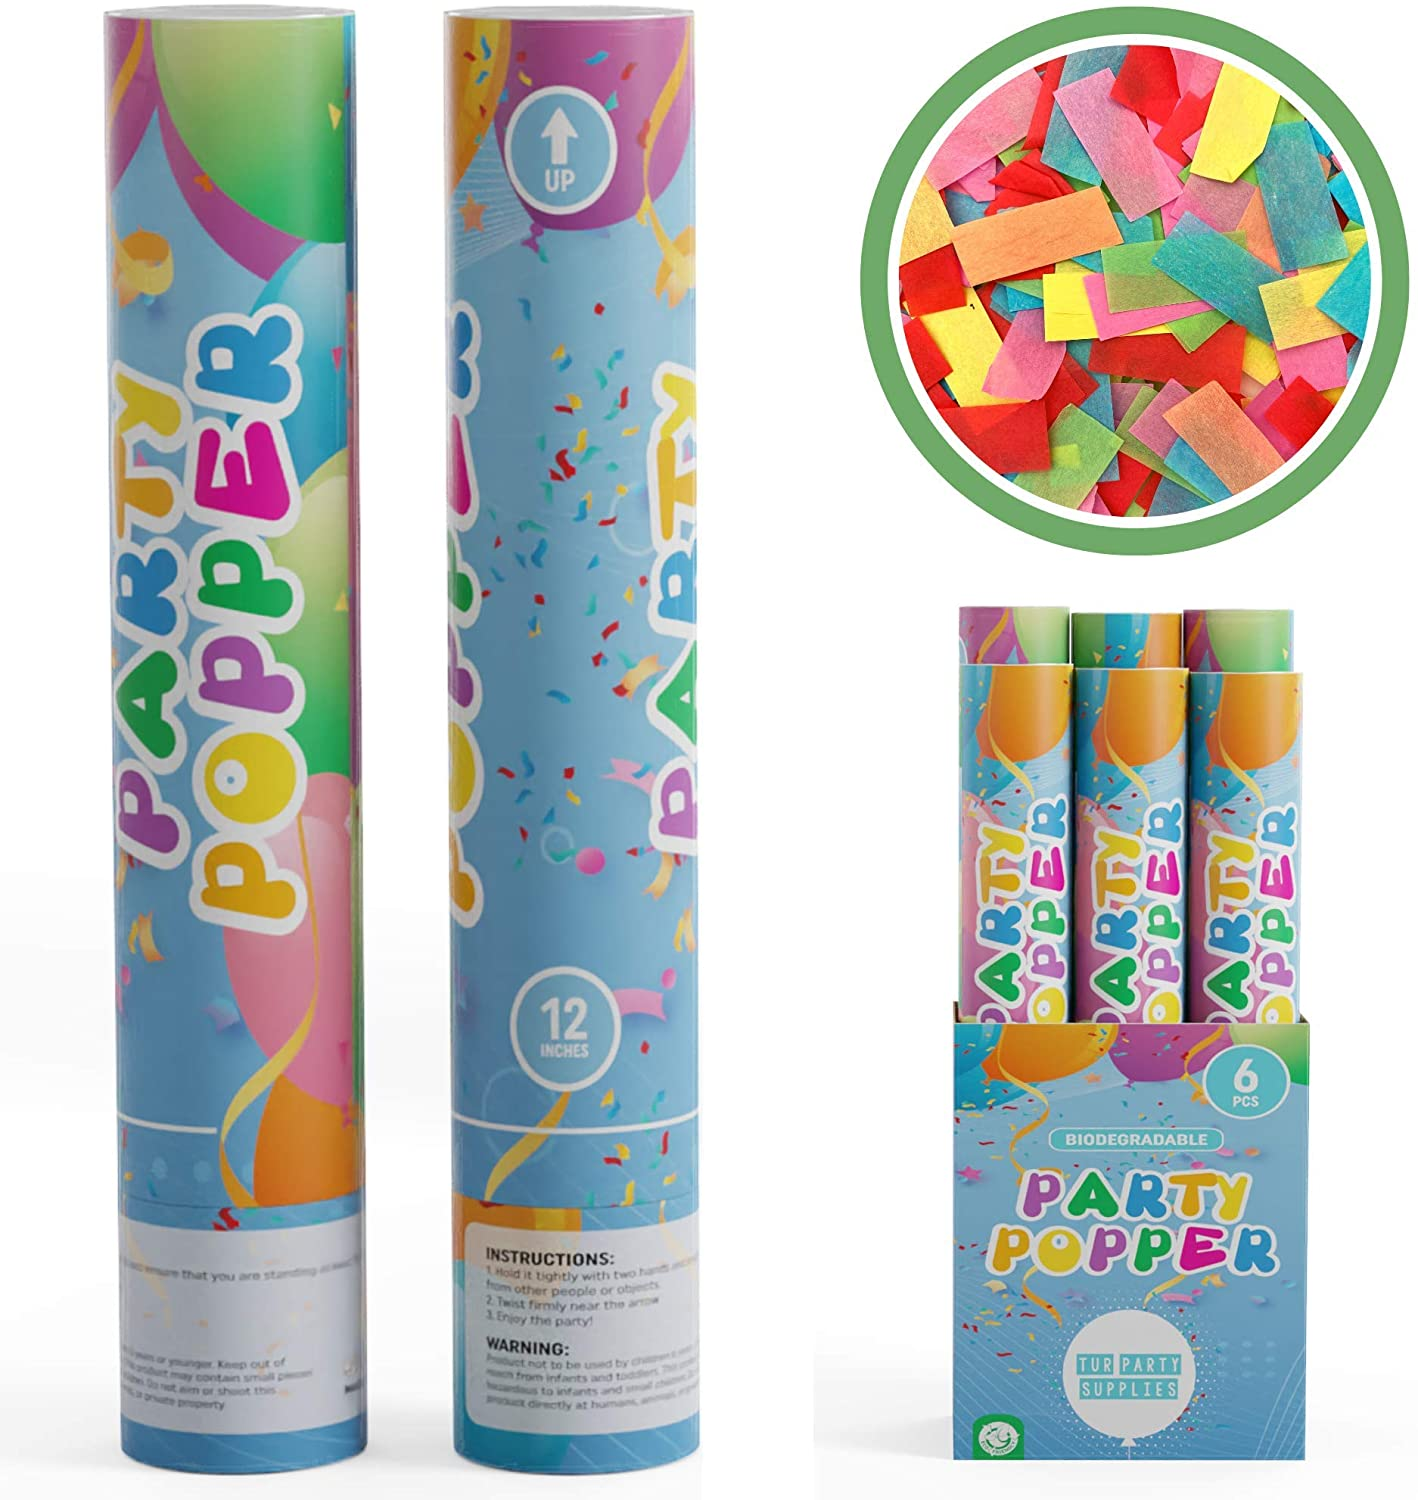 TUR Party Supplies Biodegradable Confetti Cannon Party Poppers (12 Inch) in Decorated Box Authentic Giant Confetti Cannons for Parties, Birthdays, Weddings, and More (6 Pack)